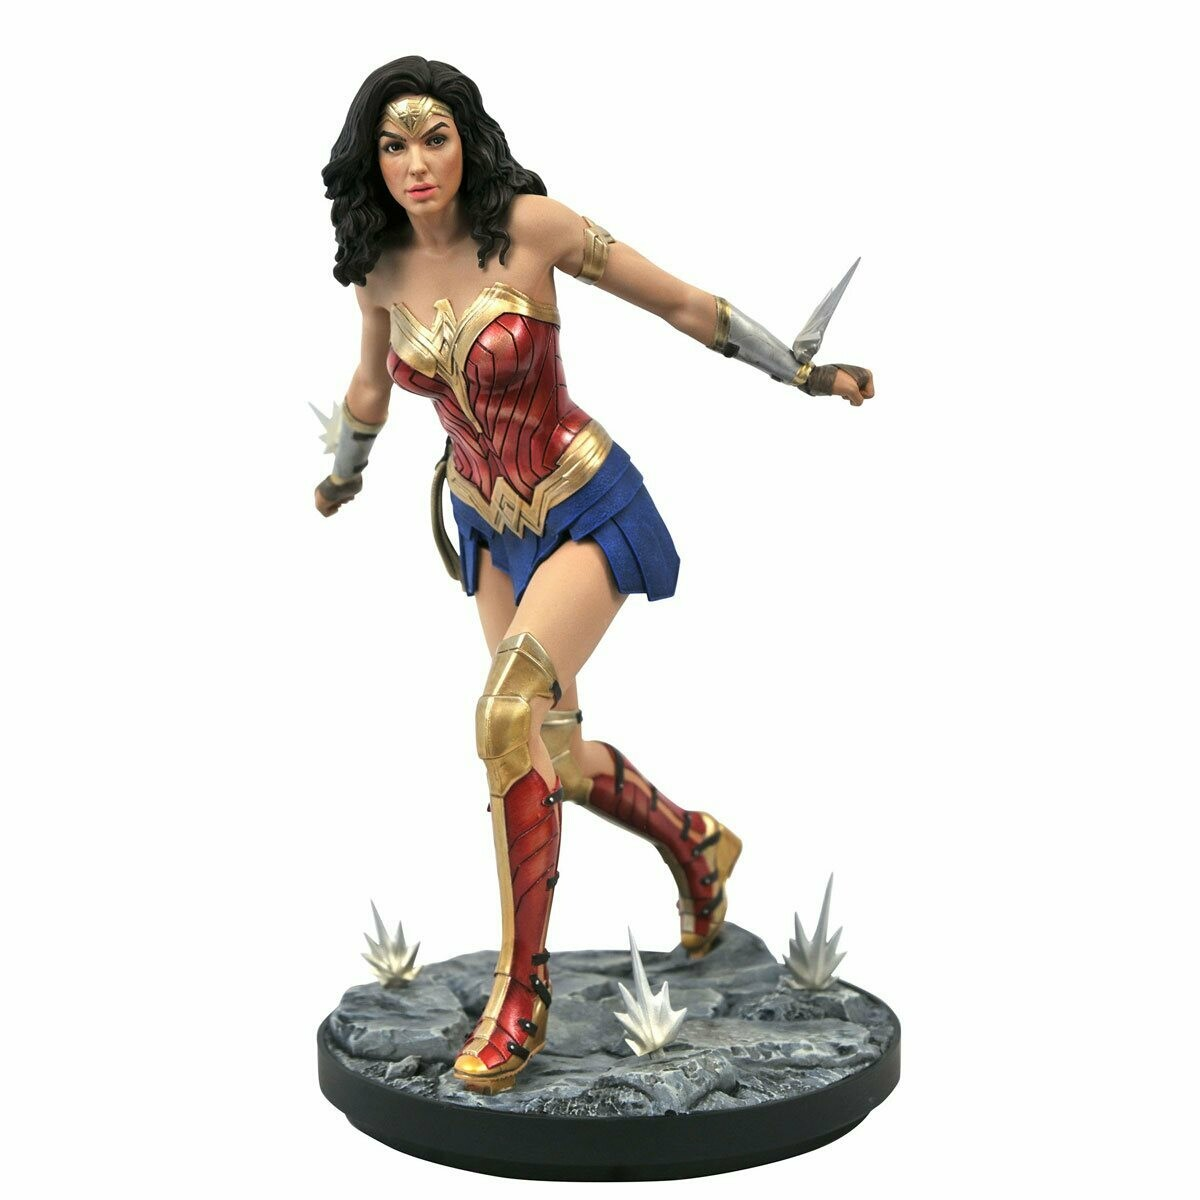 PRE-ORDER Diamond Select DC Gallery Wonder Woman 1984 Statue